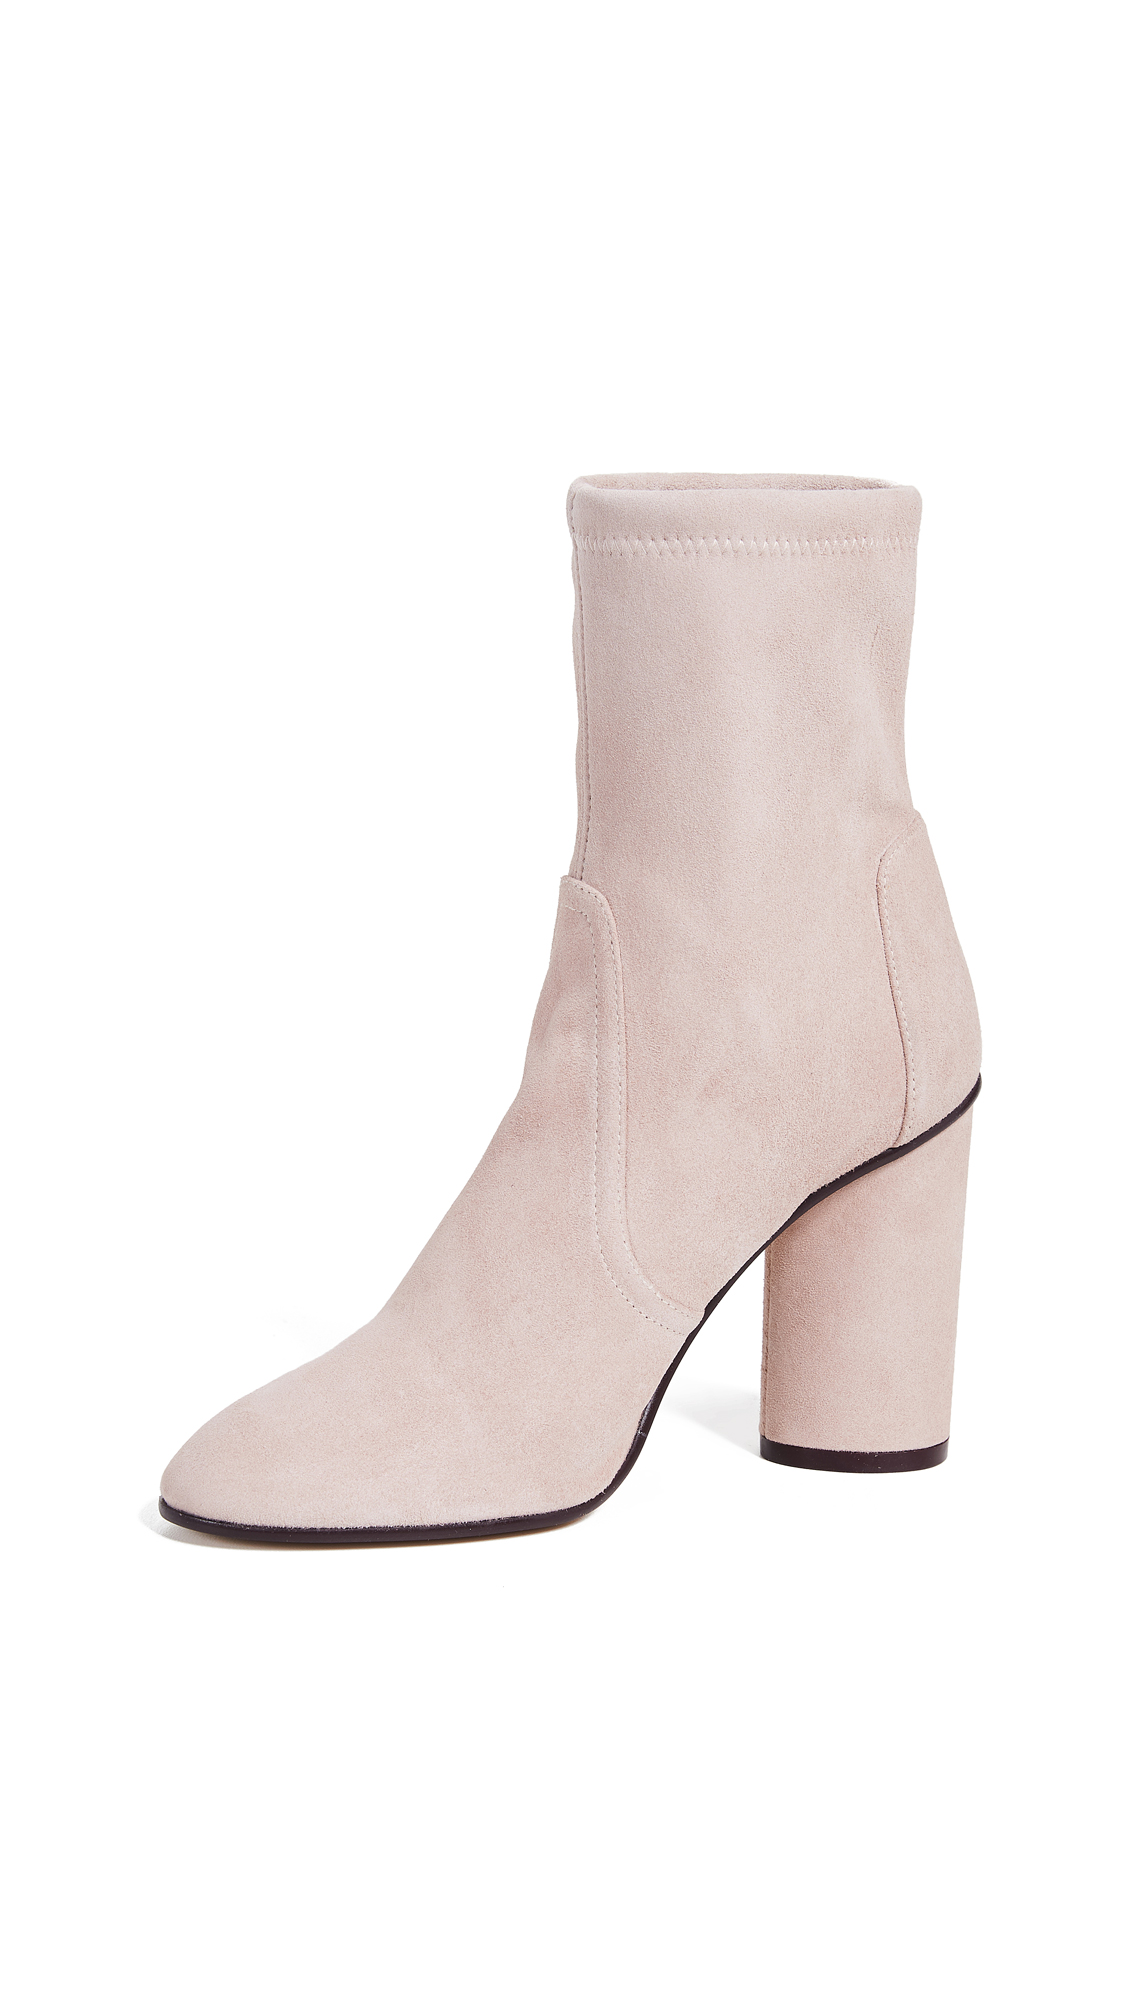 Stuart Weitzman Margot Booties - Dolce